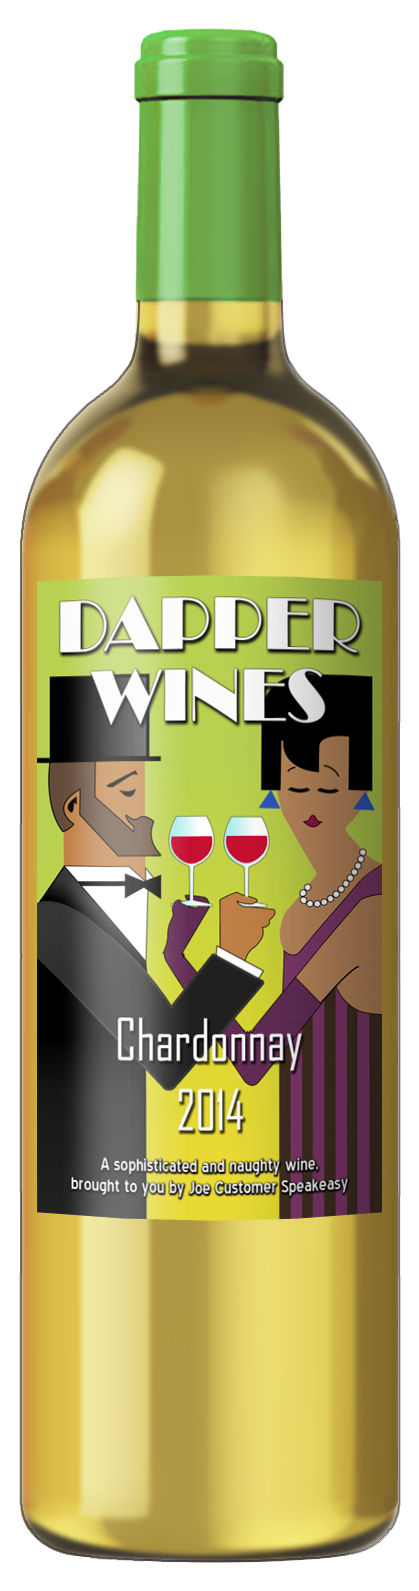 personalized custom wine label of 20's era couple in formal wear toasting with wine glasses